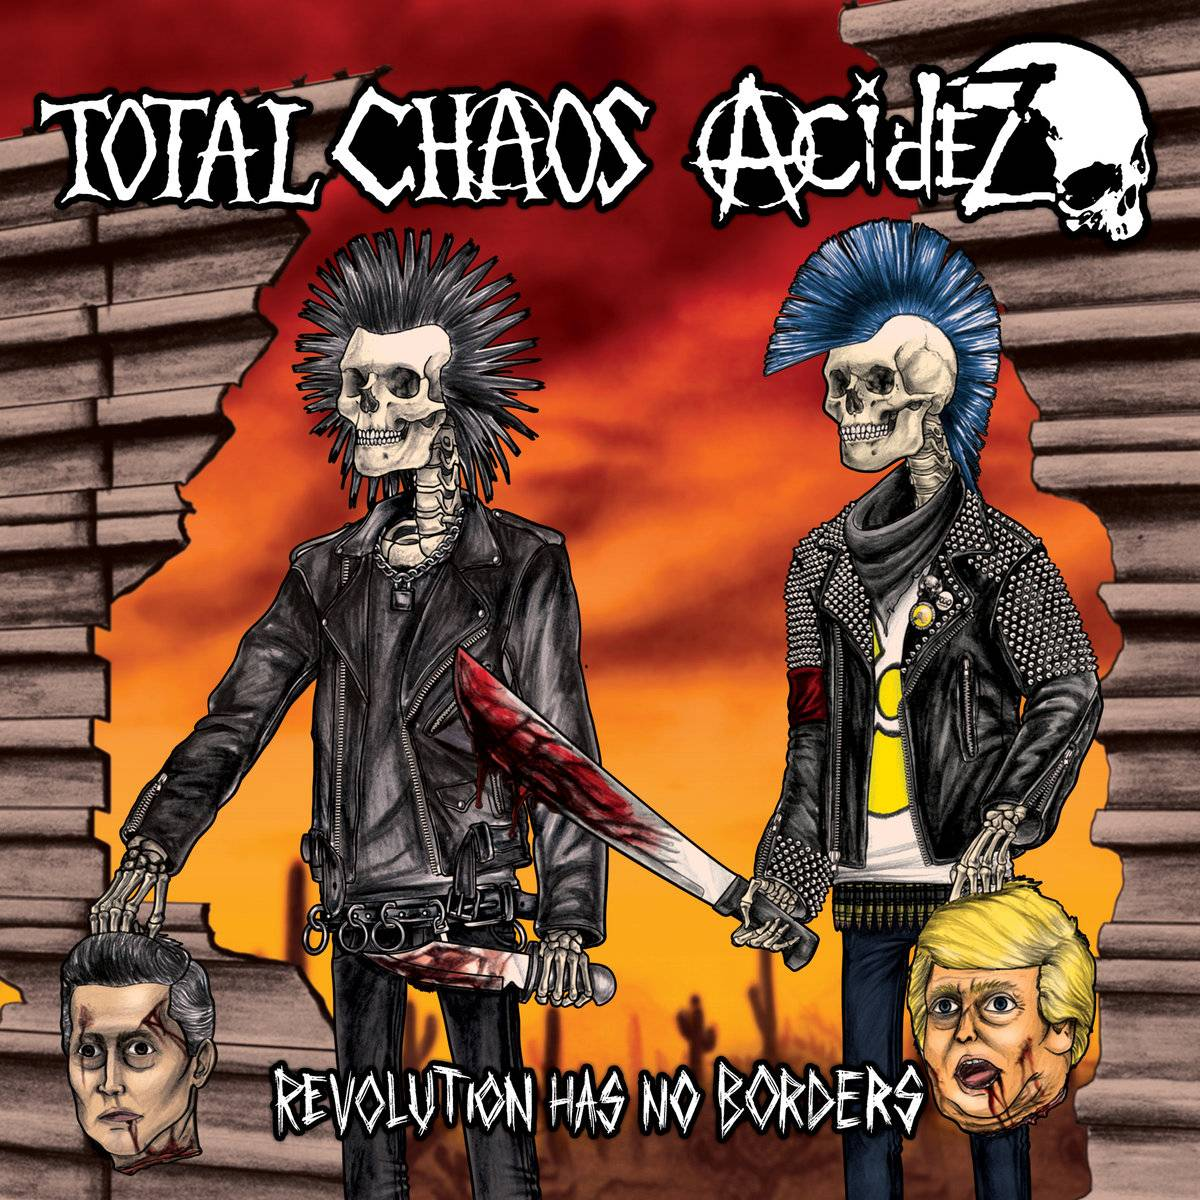 TOTAL CHAOS / ACIDEZ - REVOLUTION HAS NO BORDERS (SPLIT EP)